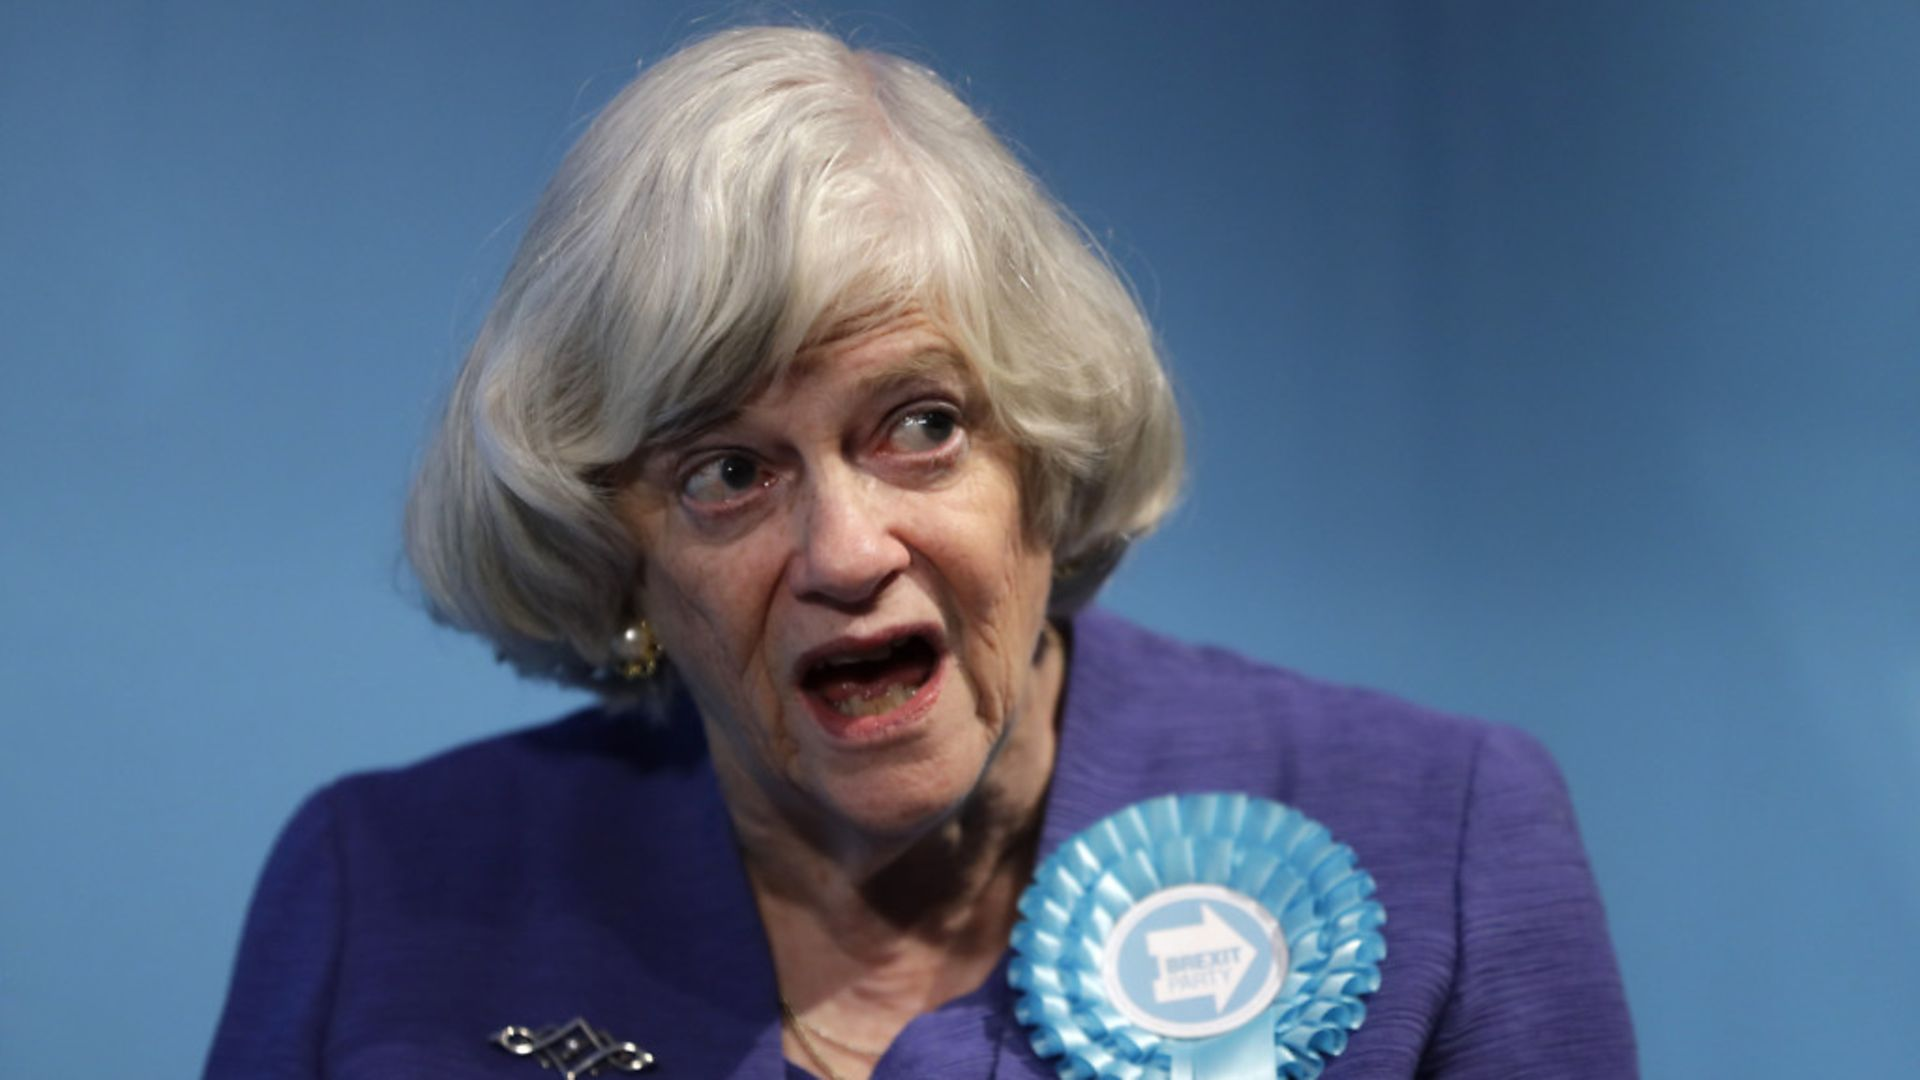 Ann Widdecombe, former Brexit Party member and former member of parliament for the Conservative Party - Credit: AP